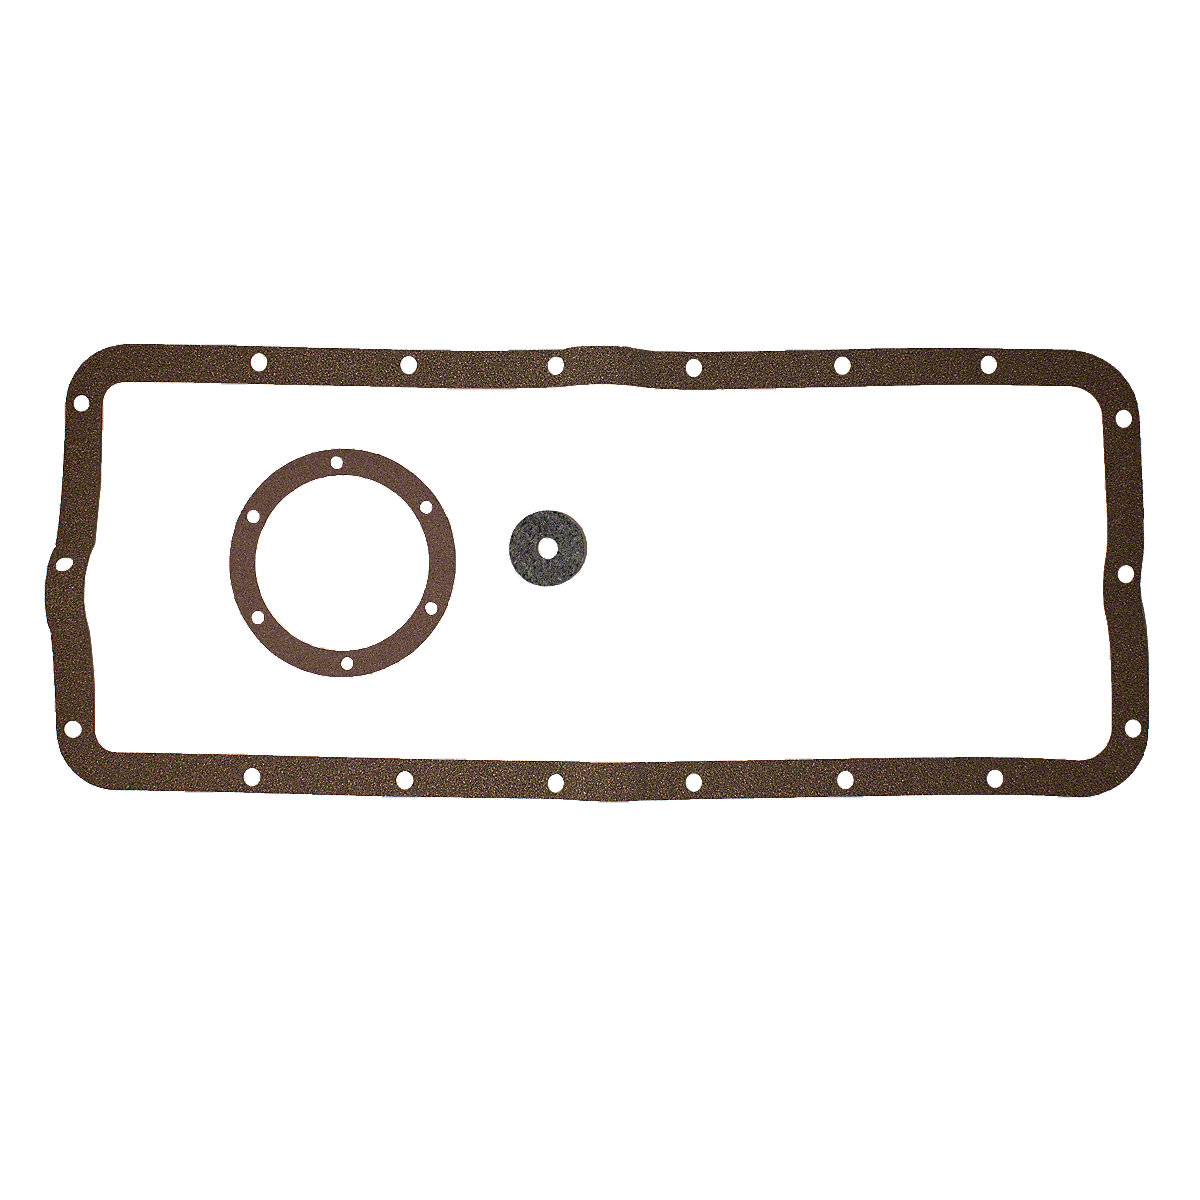 Oil Pan Gasket For Massey Harris: 44, 44 Special, 444, 404 Workbull.